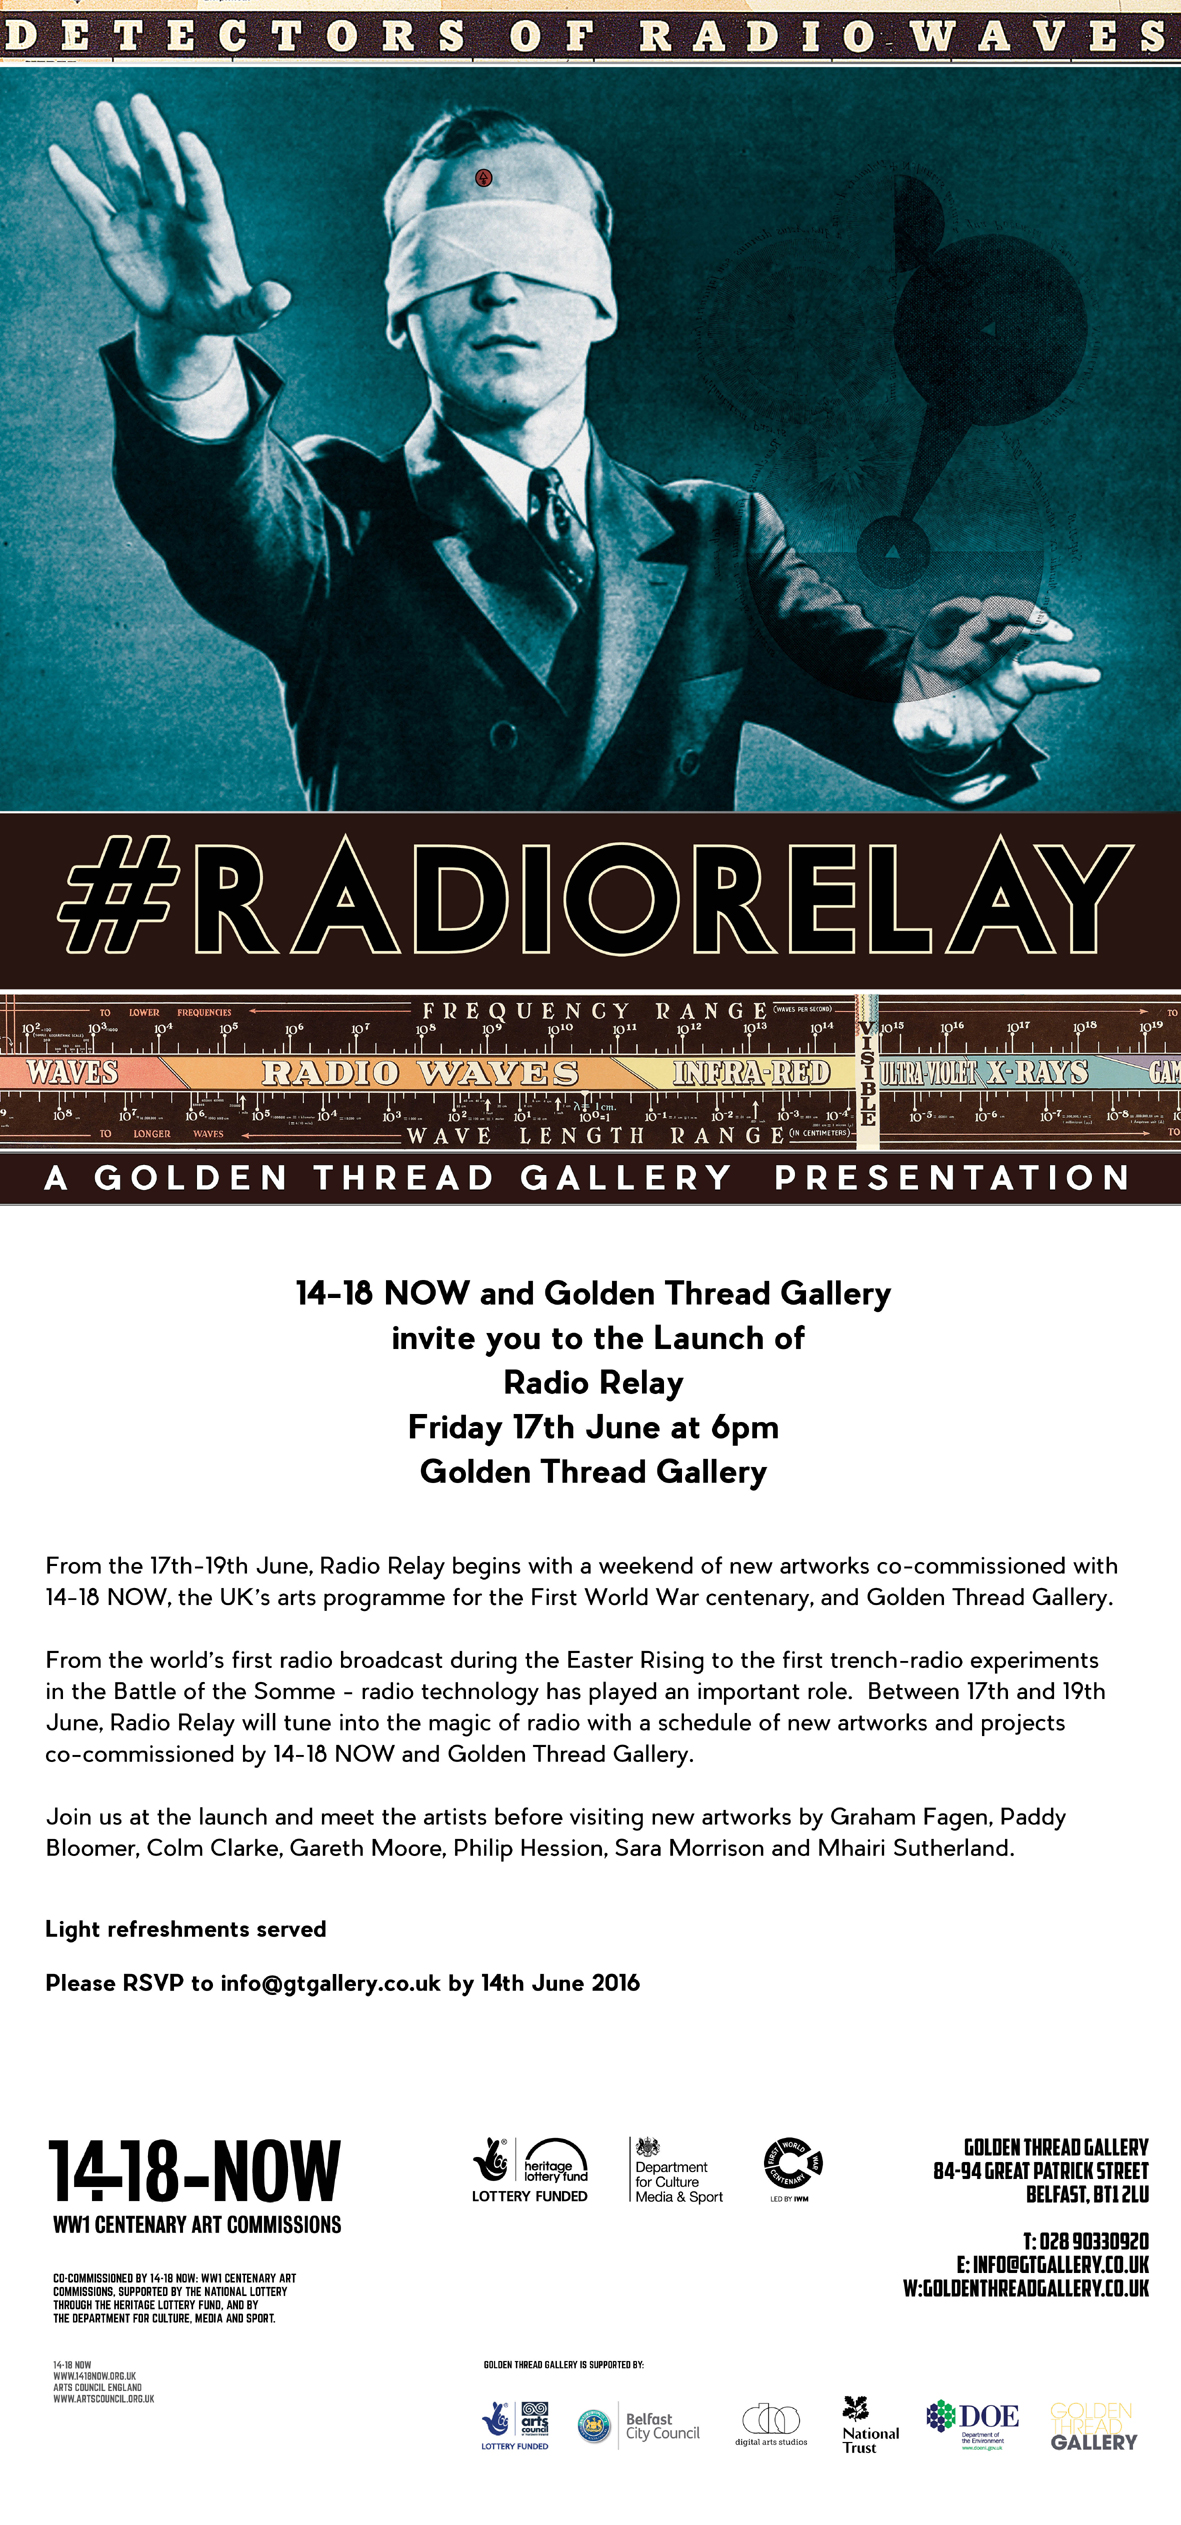 RADIO RELAY: Launch Friday 17th June at 6pm